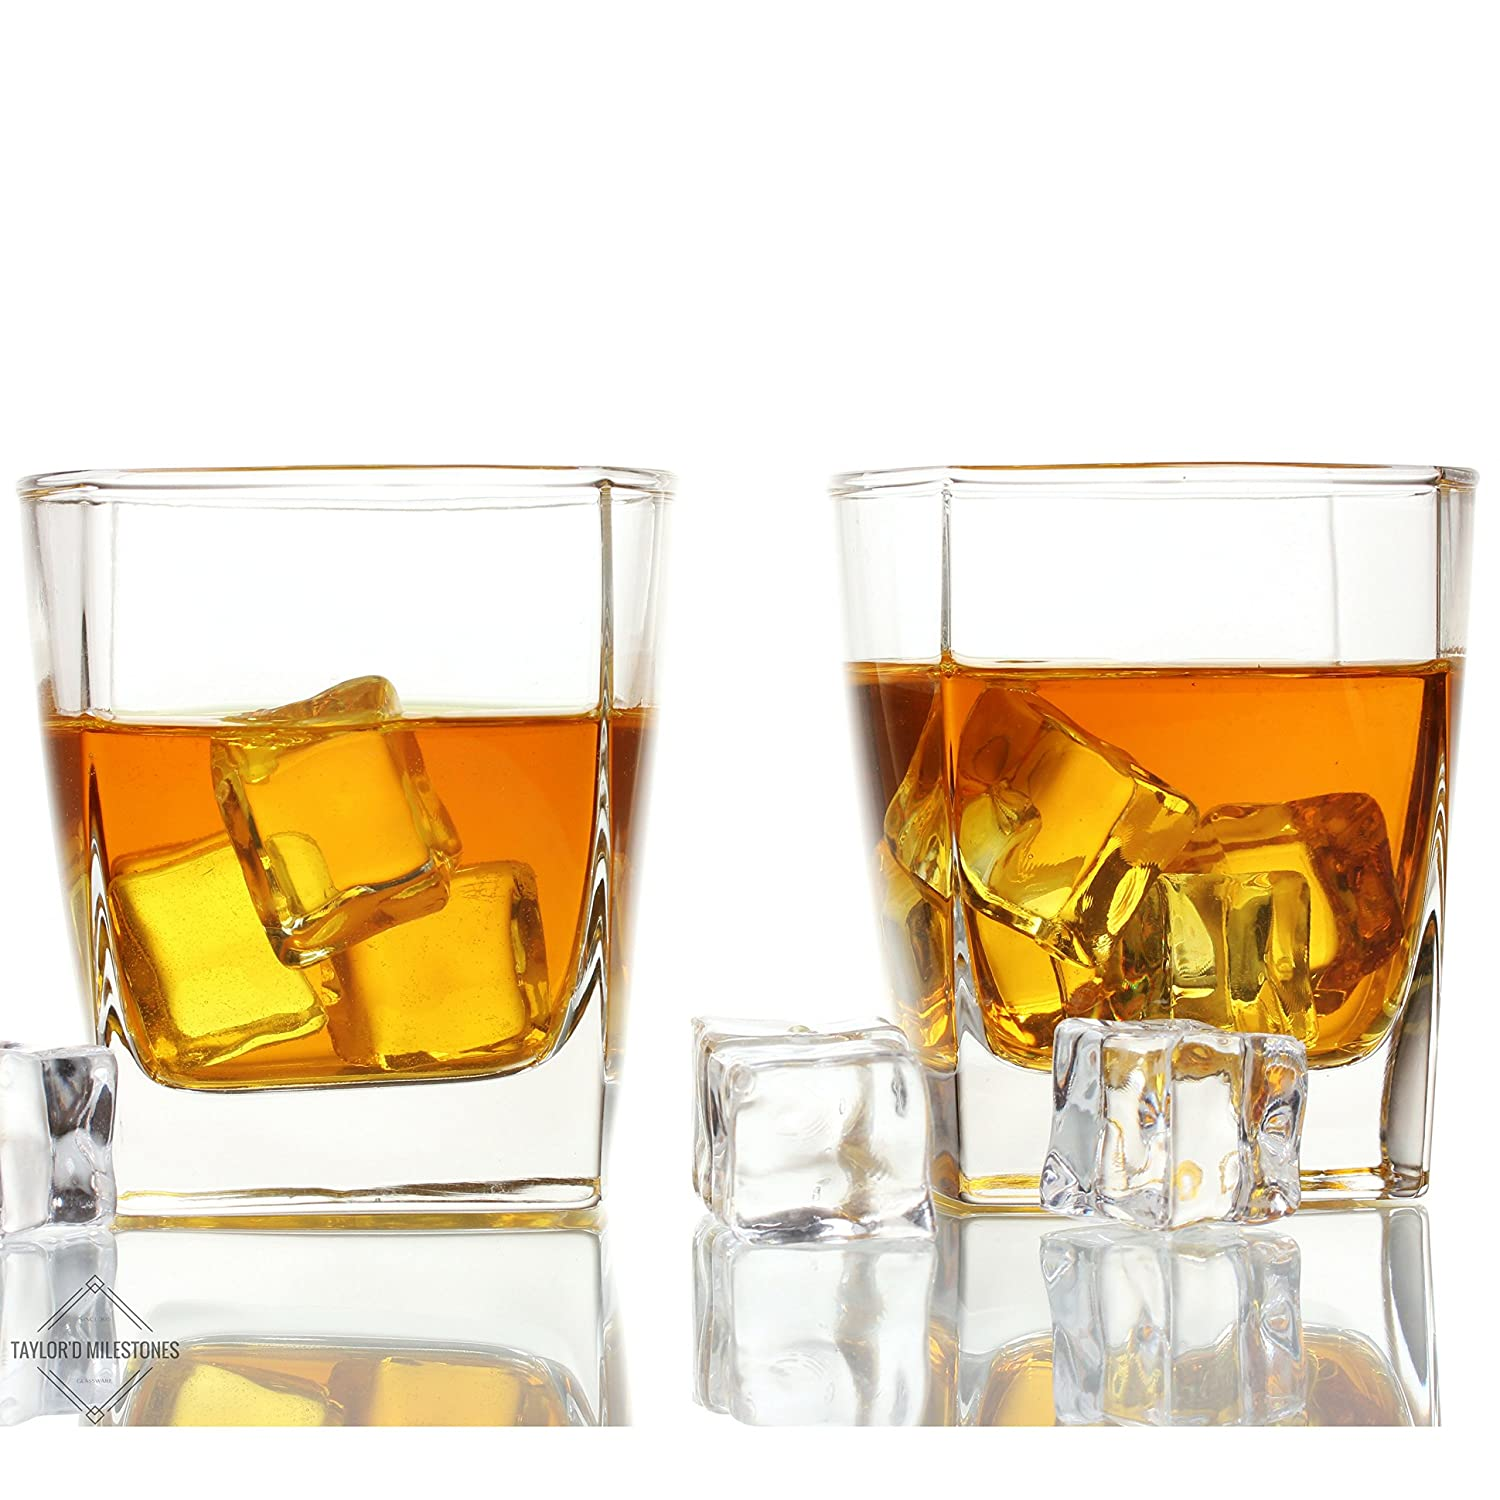 Whiskey Glass by Taylor'd Milestones - 10.5 oz Scotch Glasses. Gift Set Includes 2 Old Fashioned Tumblers with Square Base. Diamond Etched, Rocks Glassware for Bourbon, Home Bar & Everyday Use. Sterling